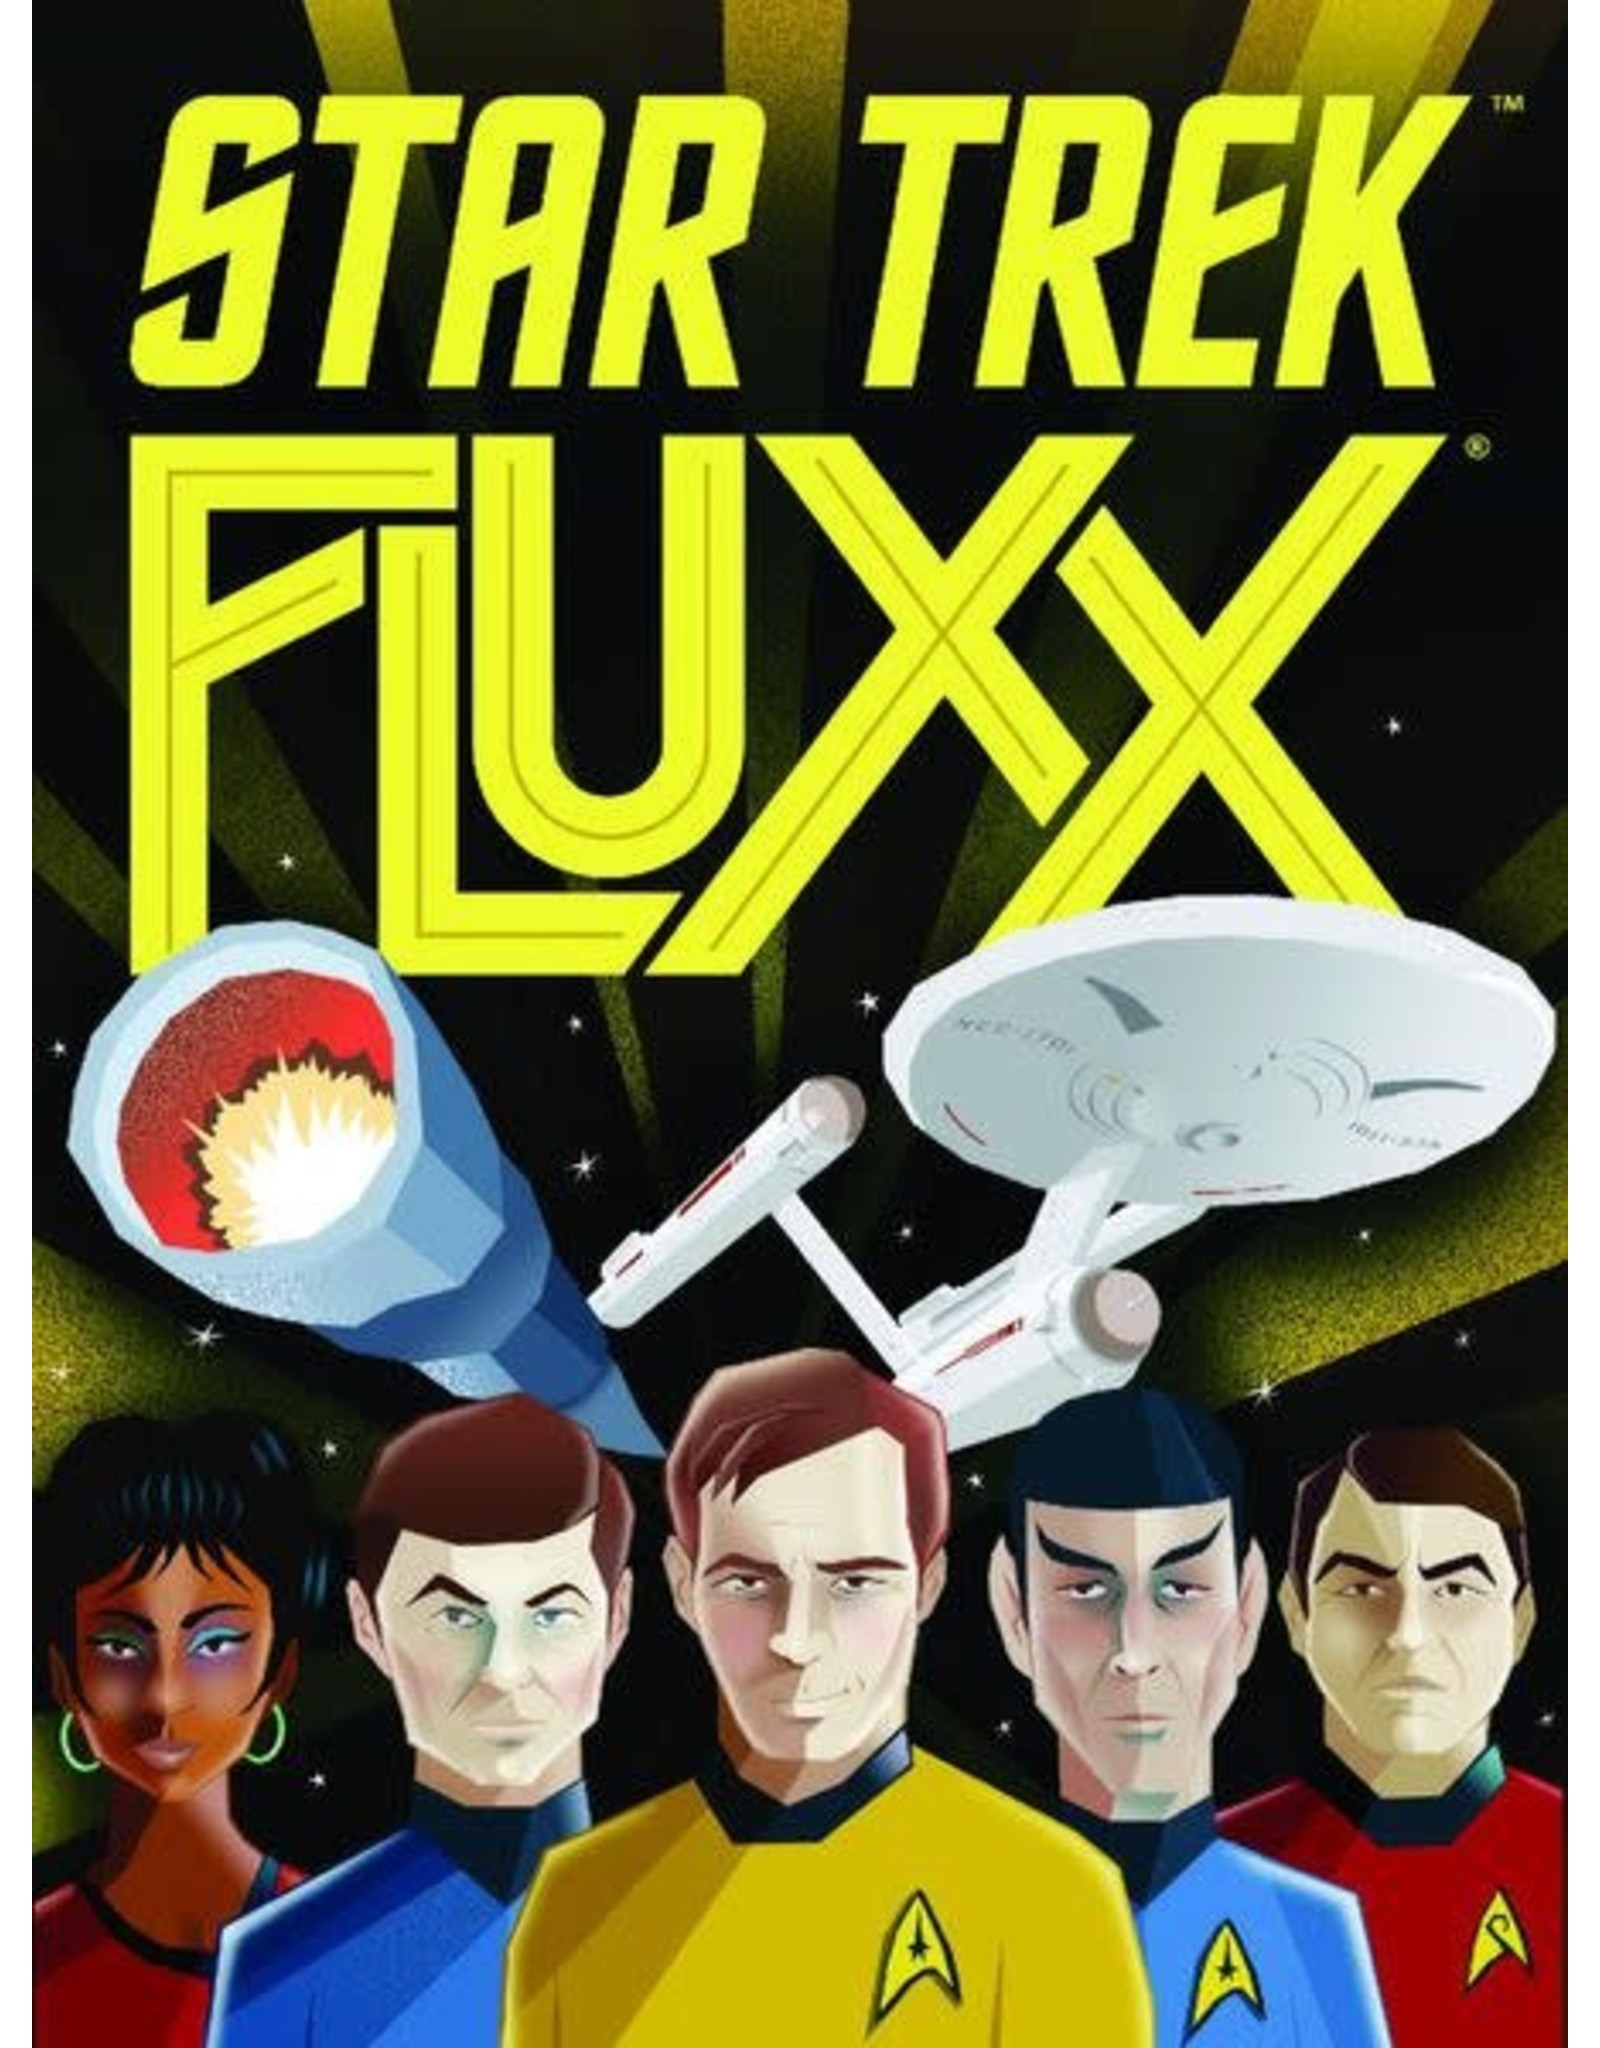 Deep Space Nine Fluxx Card Game FREE SHIPPING NEW IN BOX Looney Labs Star Trek